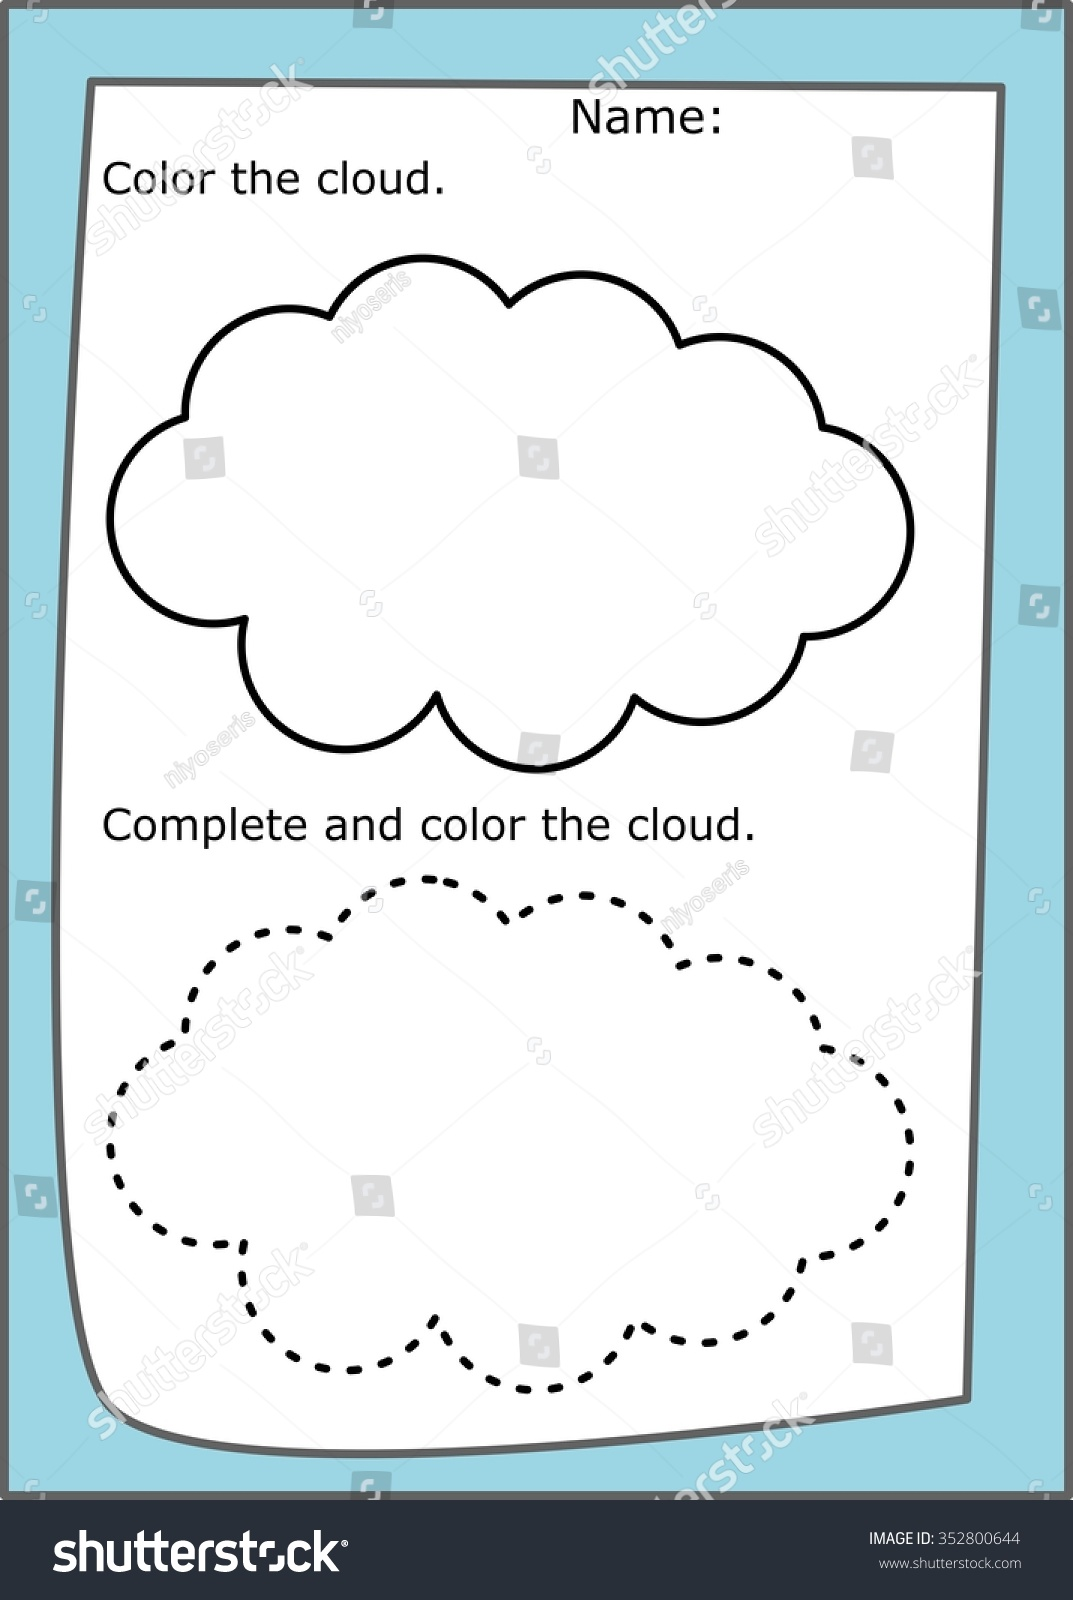 worksheet Cloud Worksheet cloud coloring worksheet dotted lines stock illustration 352800644 and lines